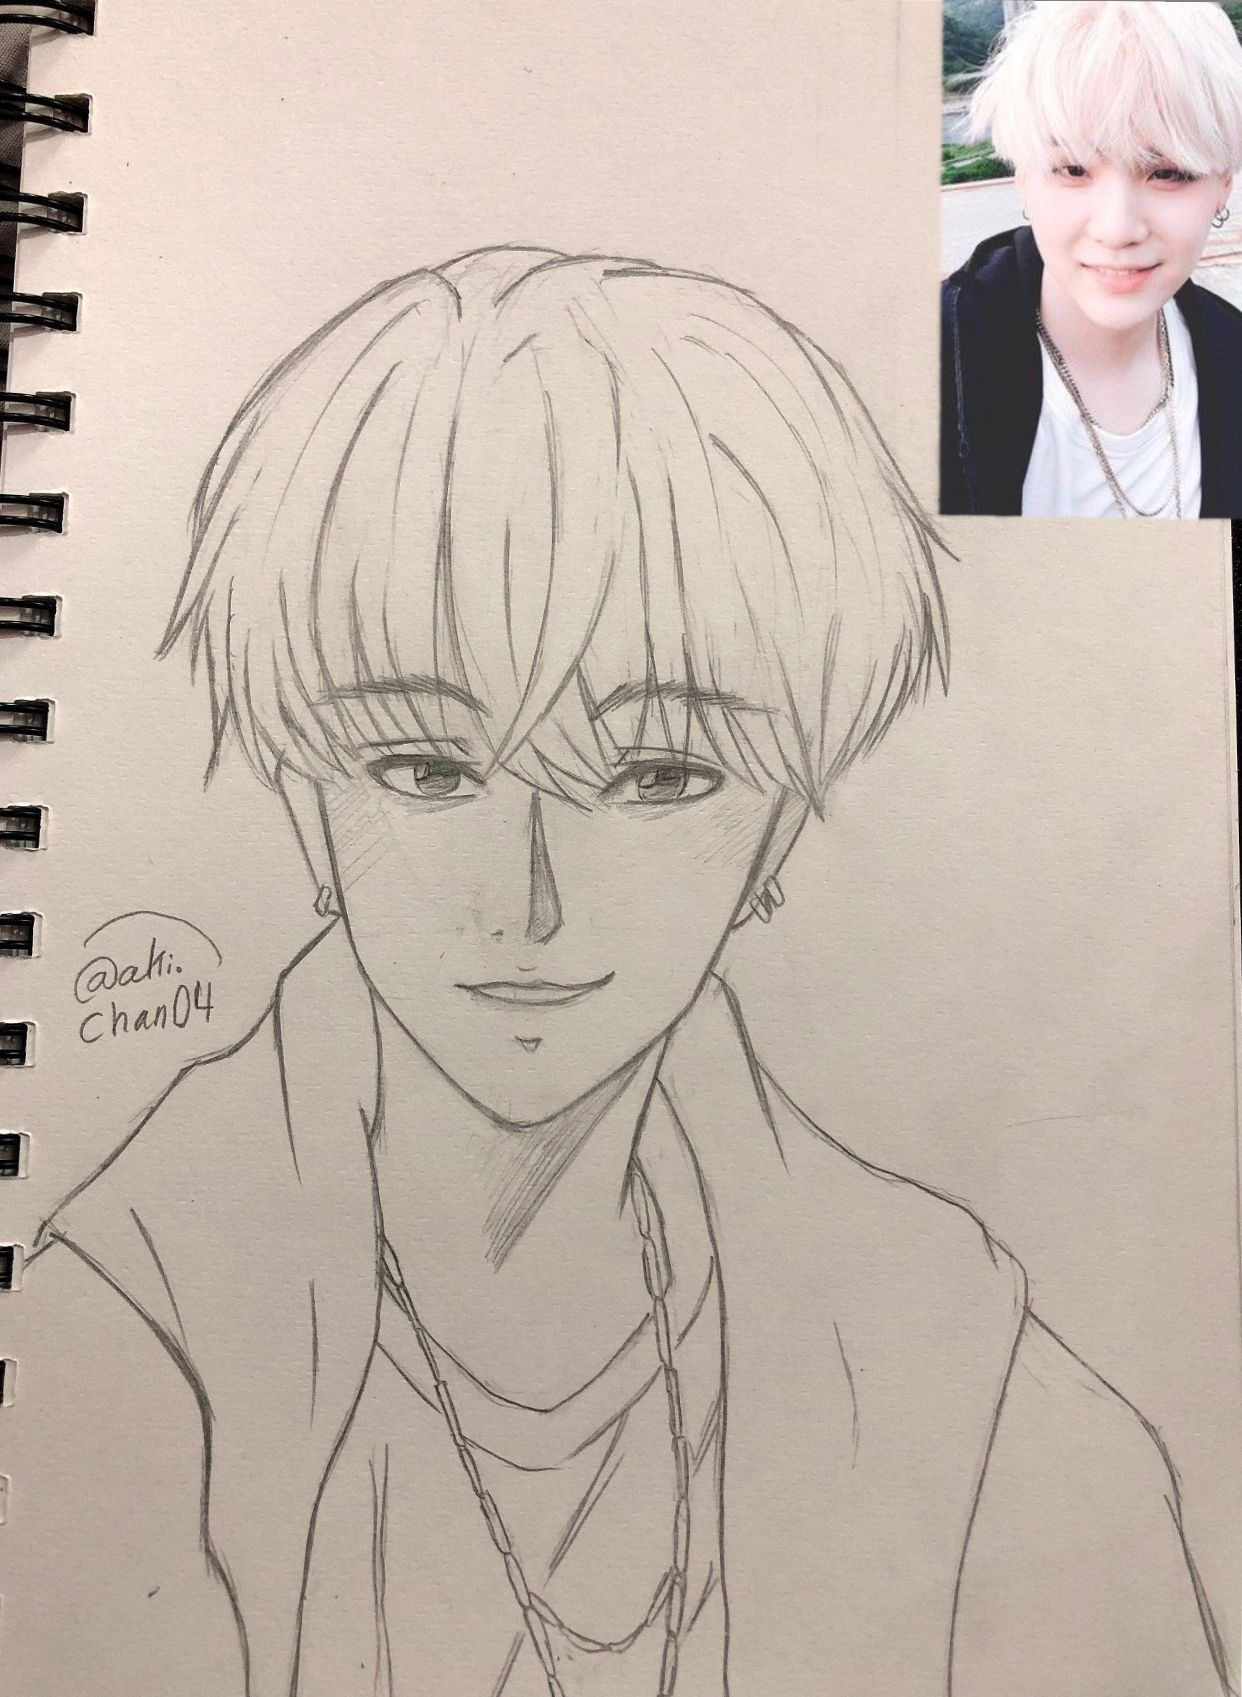 My Drawing Suga From Bts Suga Bts Drawings Boy Kpop Idol My Drawings Drawing S Drawings